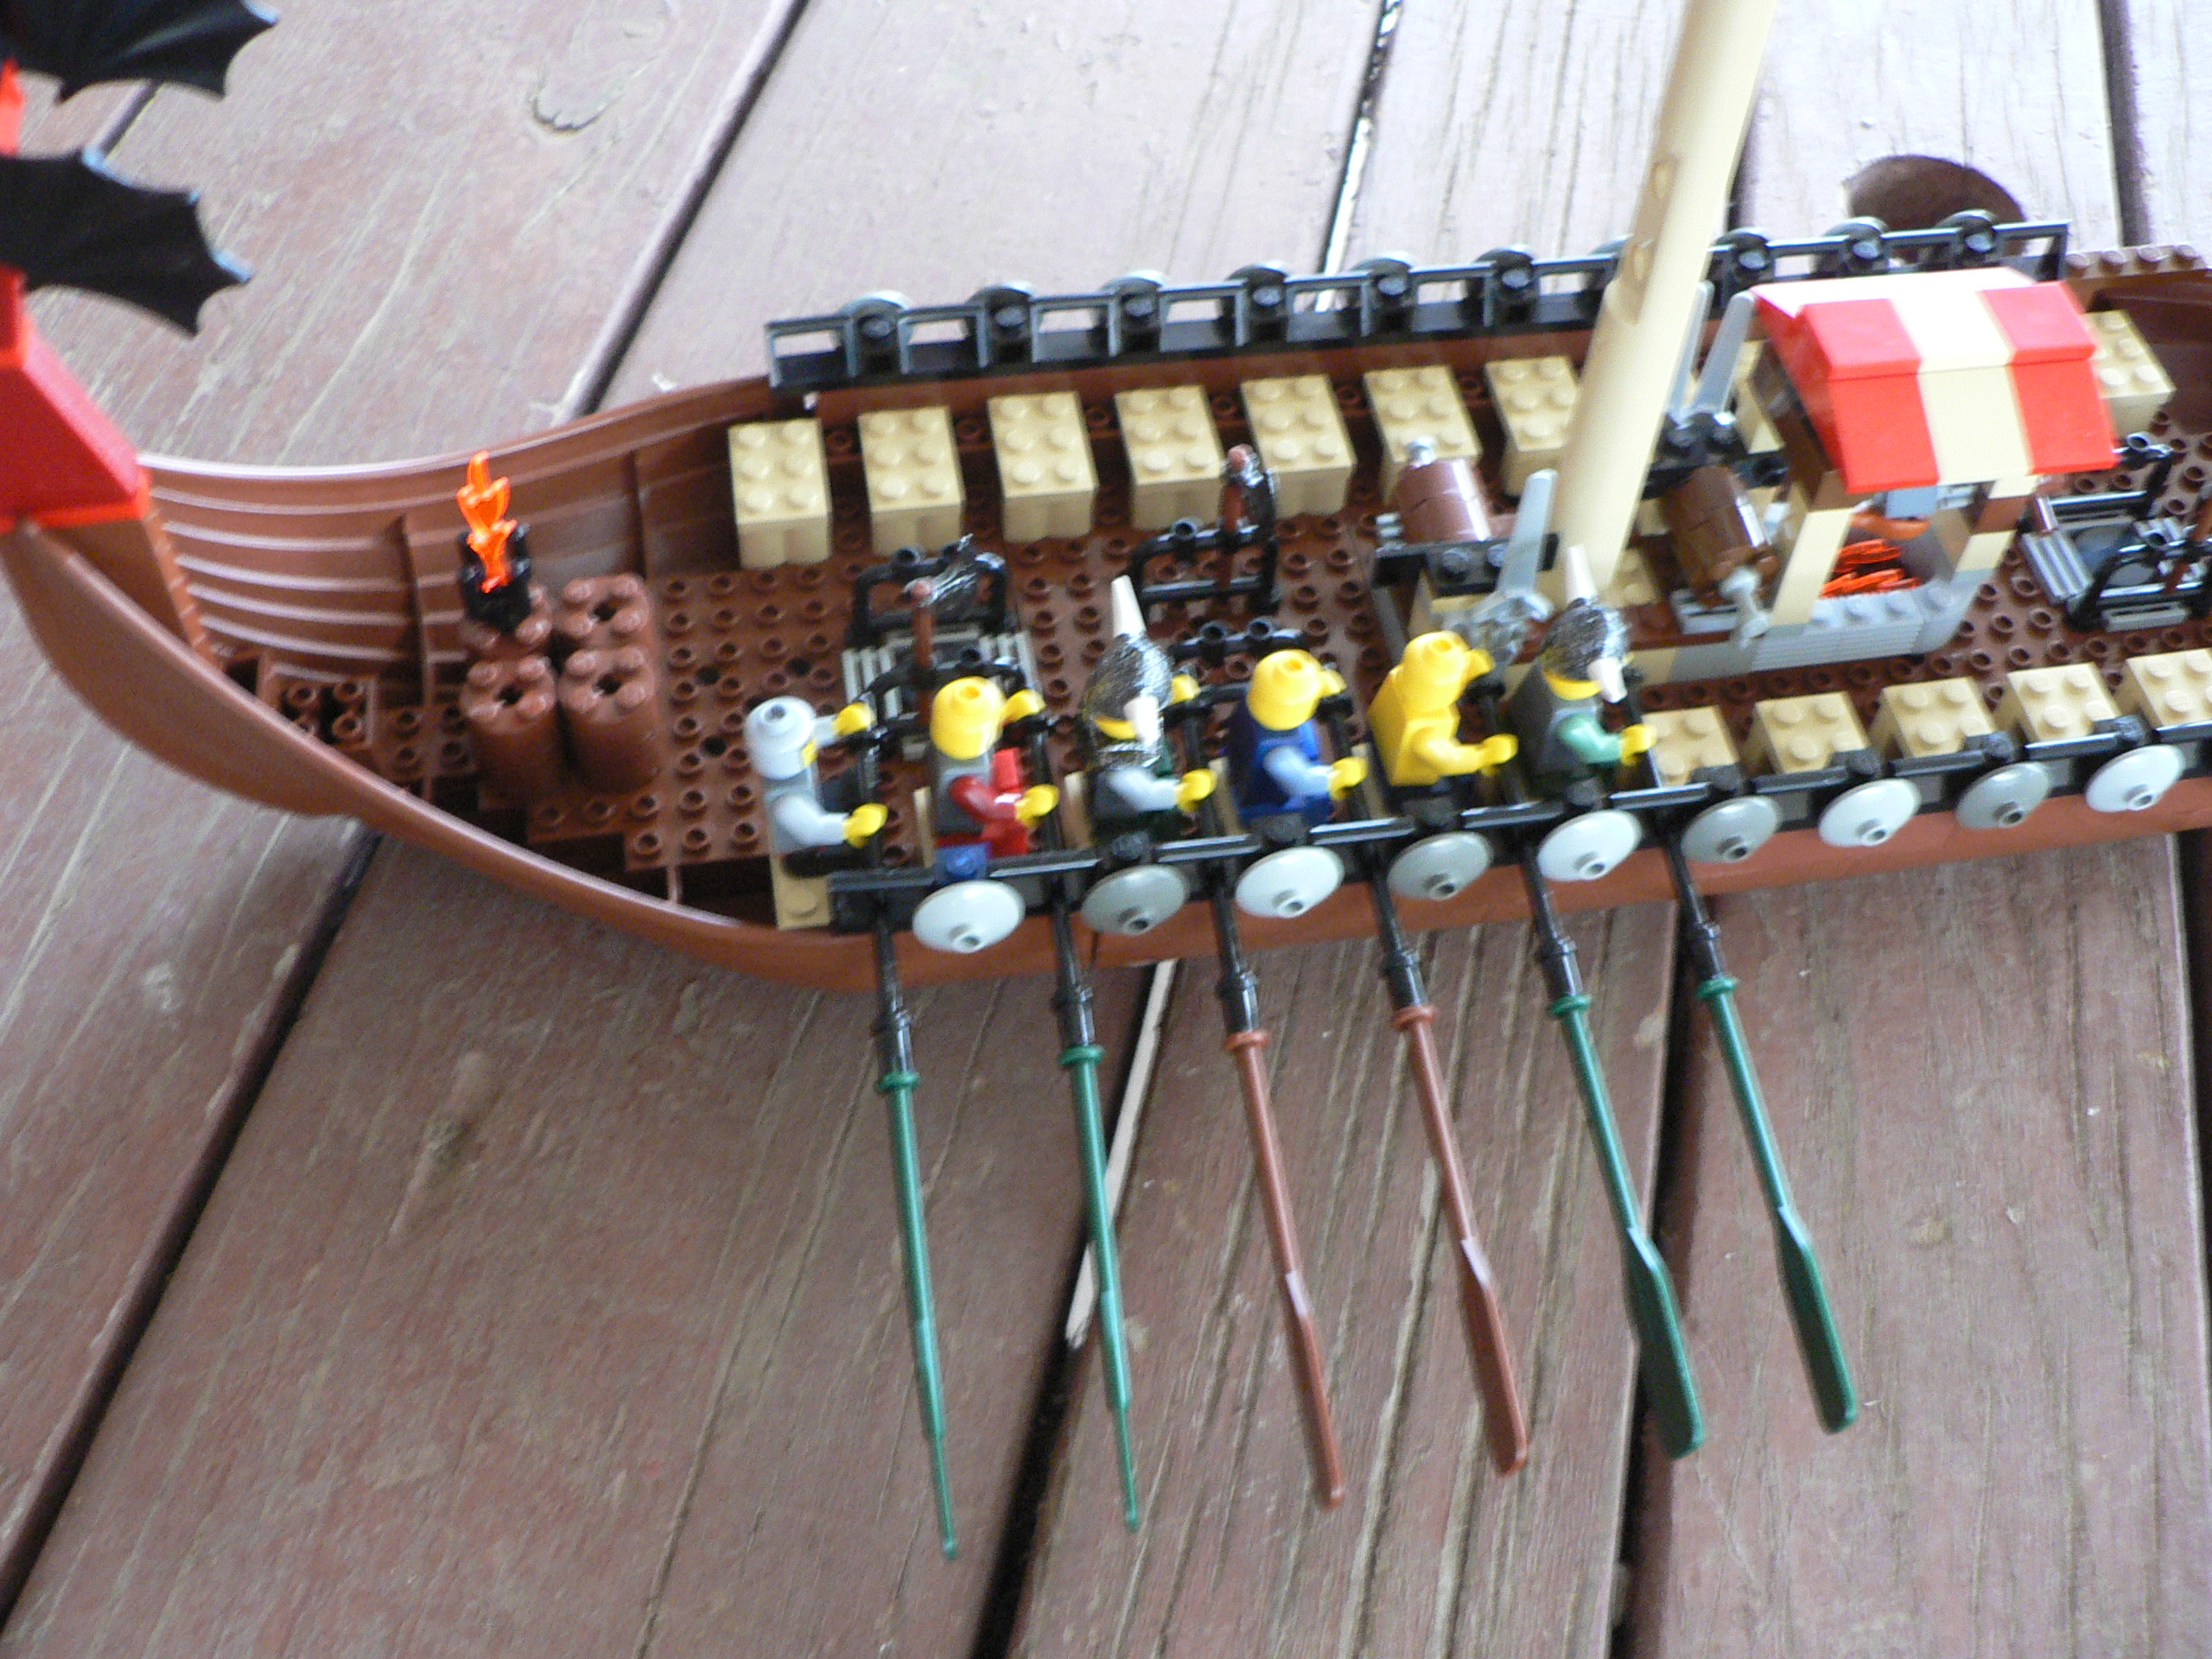 05-09-28-lego_viking_ship4.jpg